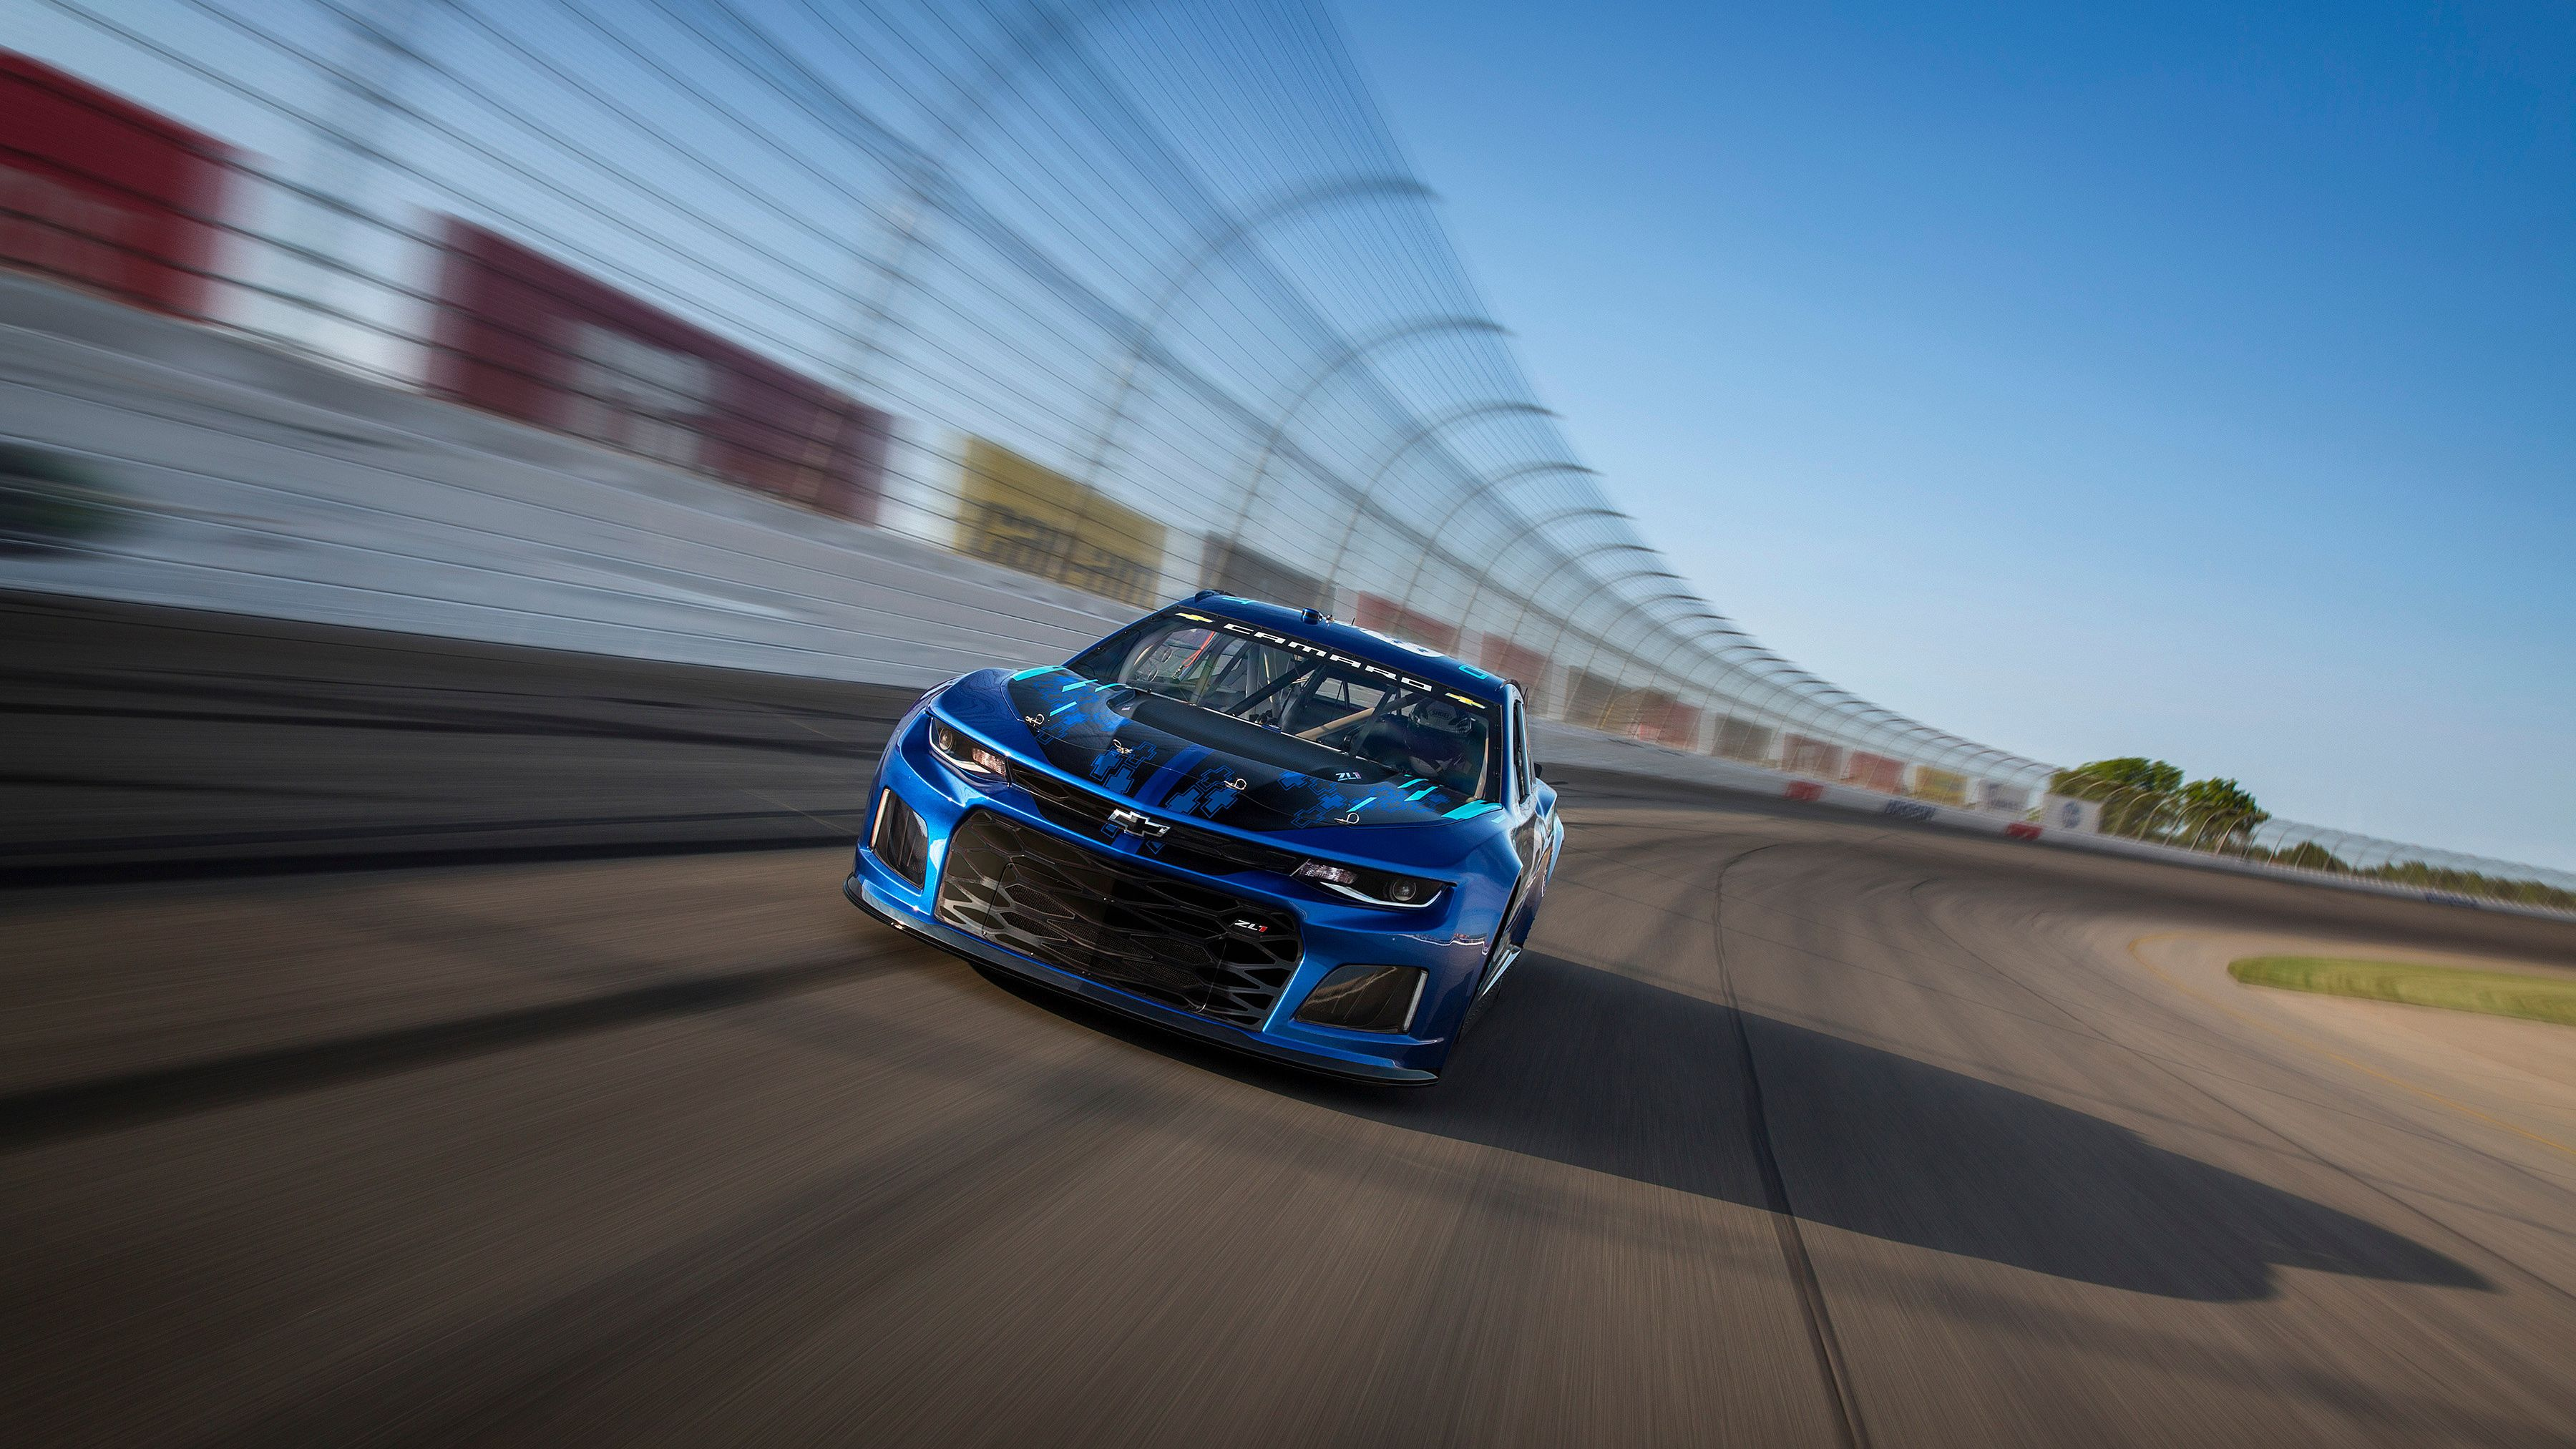 Chevrolet Unveiled Its 2018 Monster Energy Nascar Cup Series Car Thursday At Its Corporate Headquarters Nascar Race Cars Monster Energy Nascar Nascar Racing